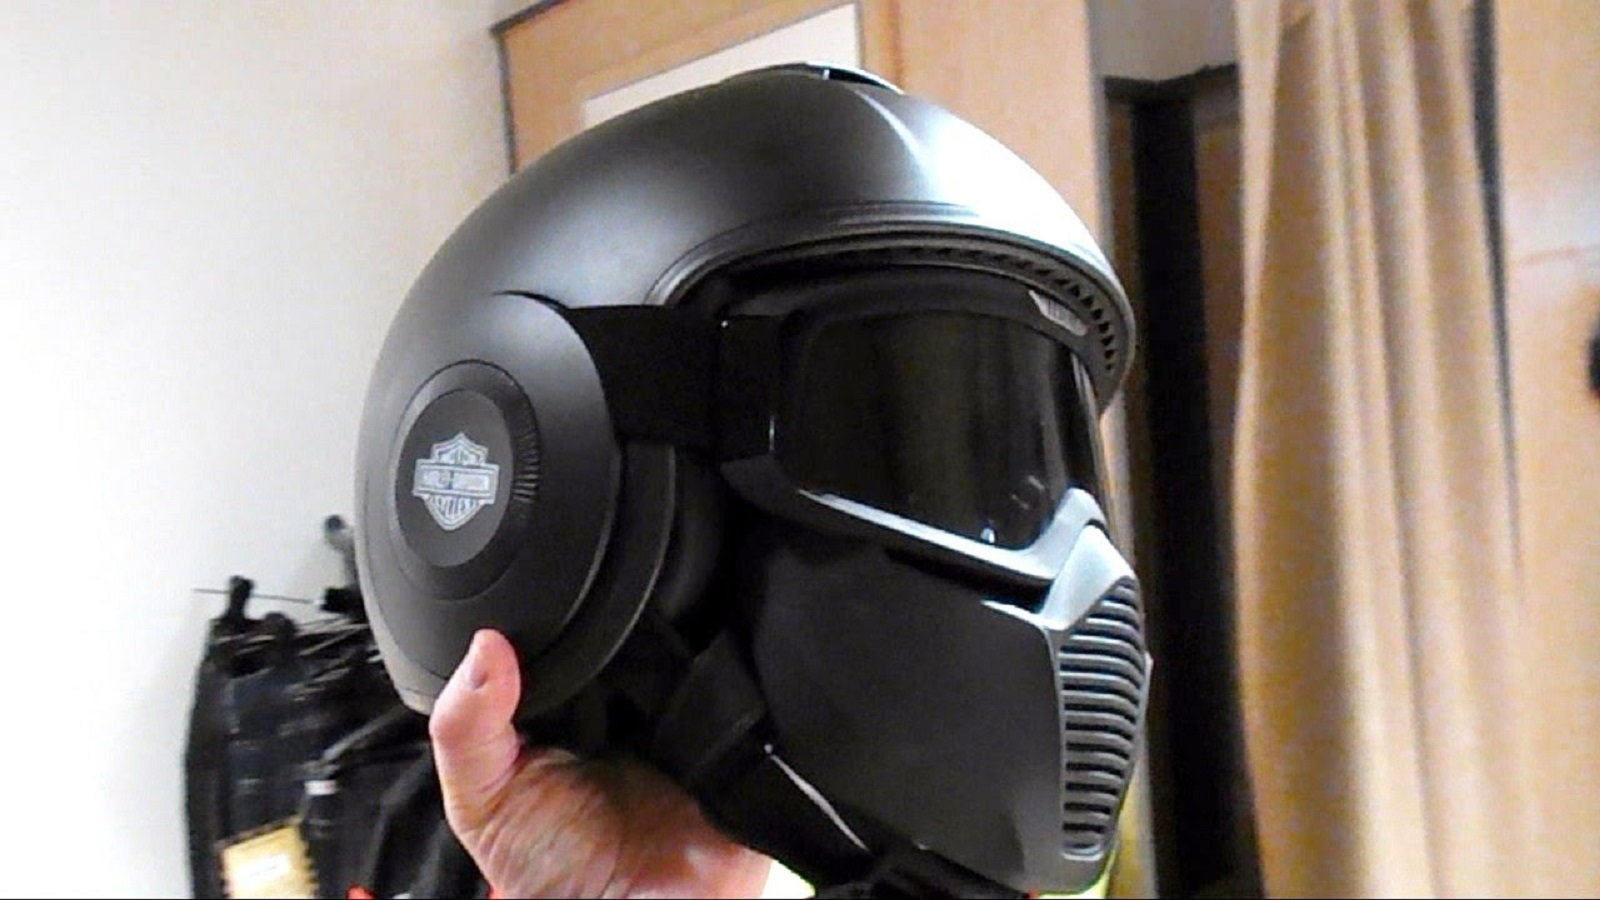 What You Didn't Know About Helmet Laws